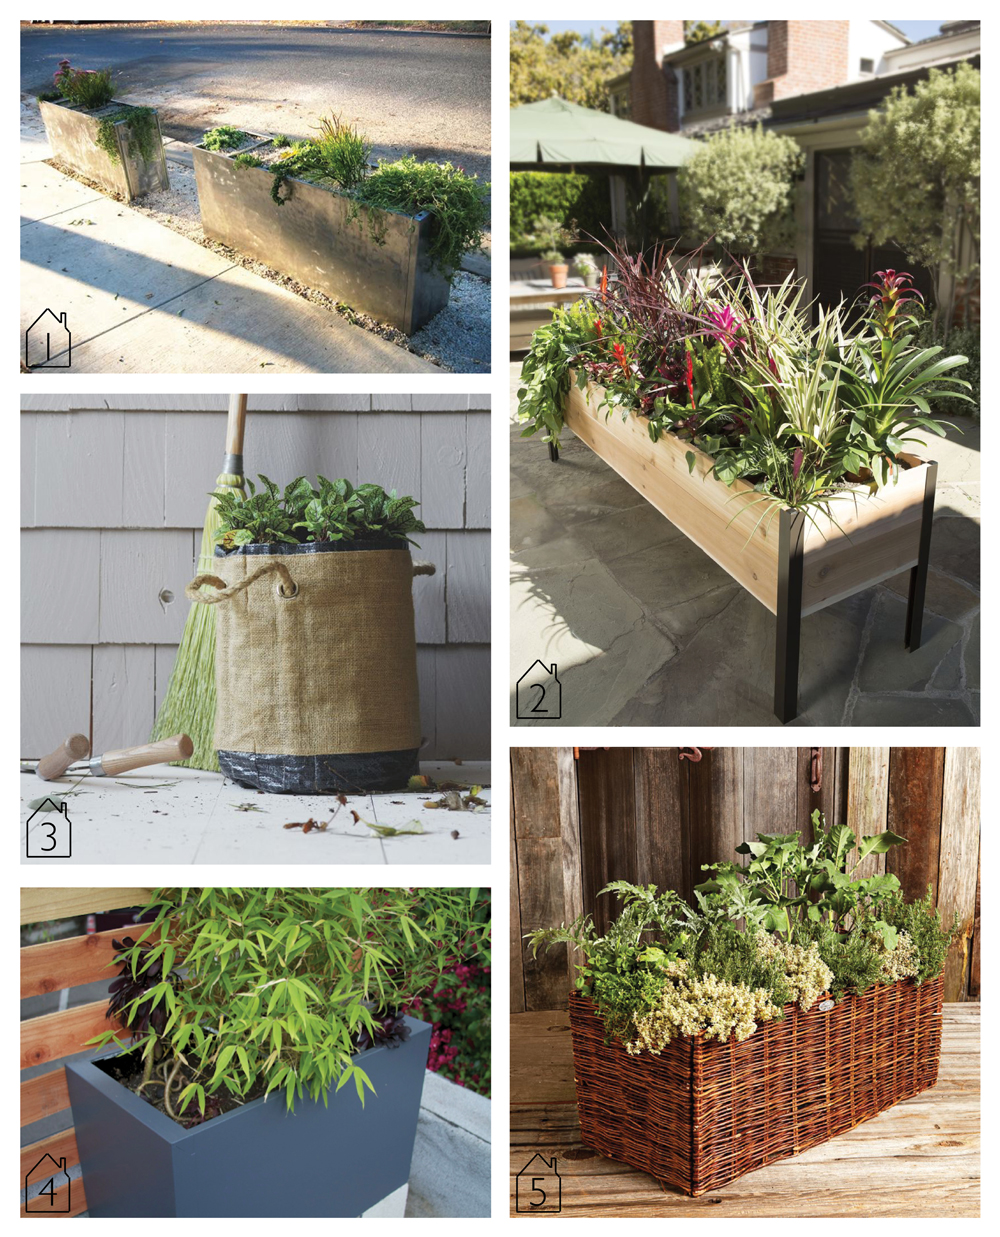 1. Repurposed filing cabinet/ houzz  2. Wood and metal planter/ Gardener's Supply Company  3. Canvas bag planter/ West Elm  4. Gray metal planter/via  Gardenista  5. Natural willow planter/ Williams-Sonoma